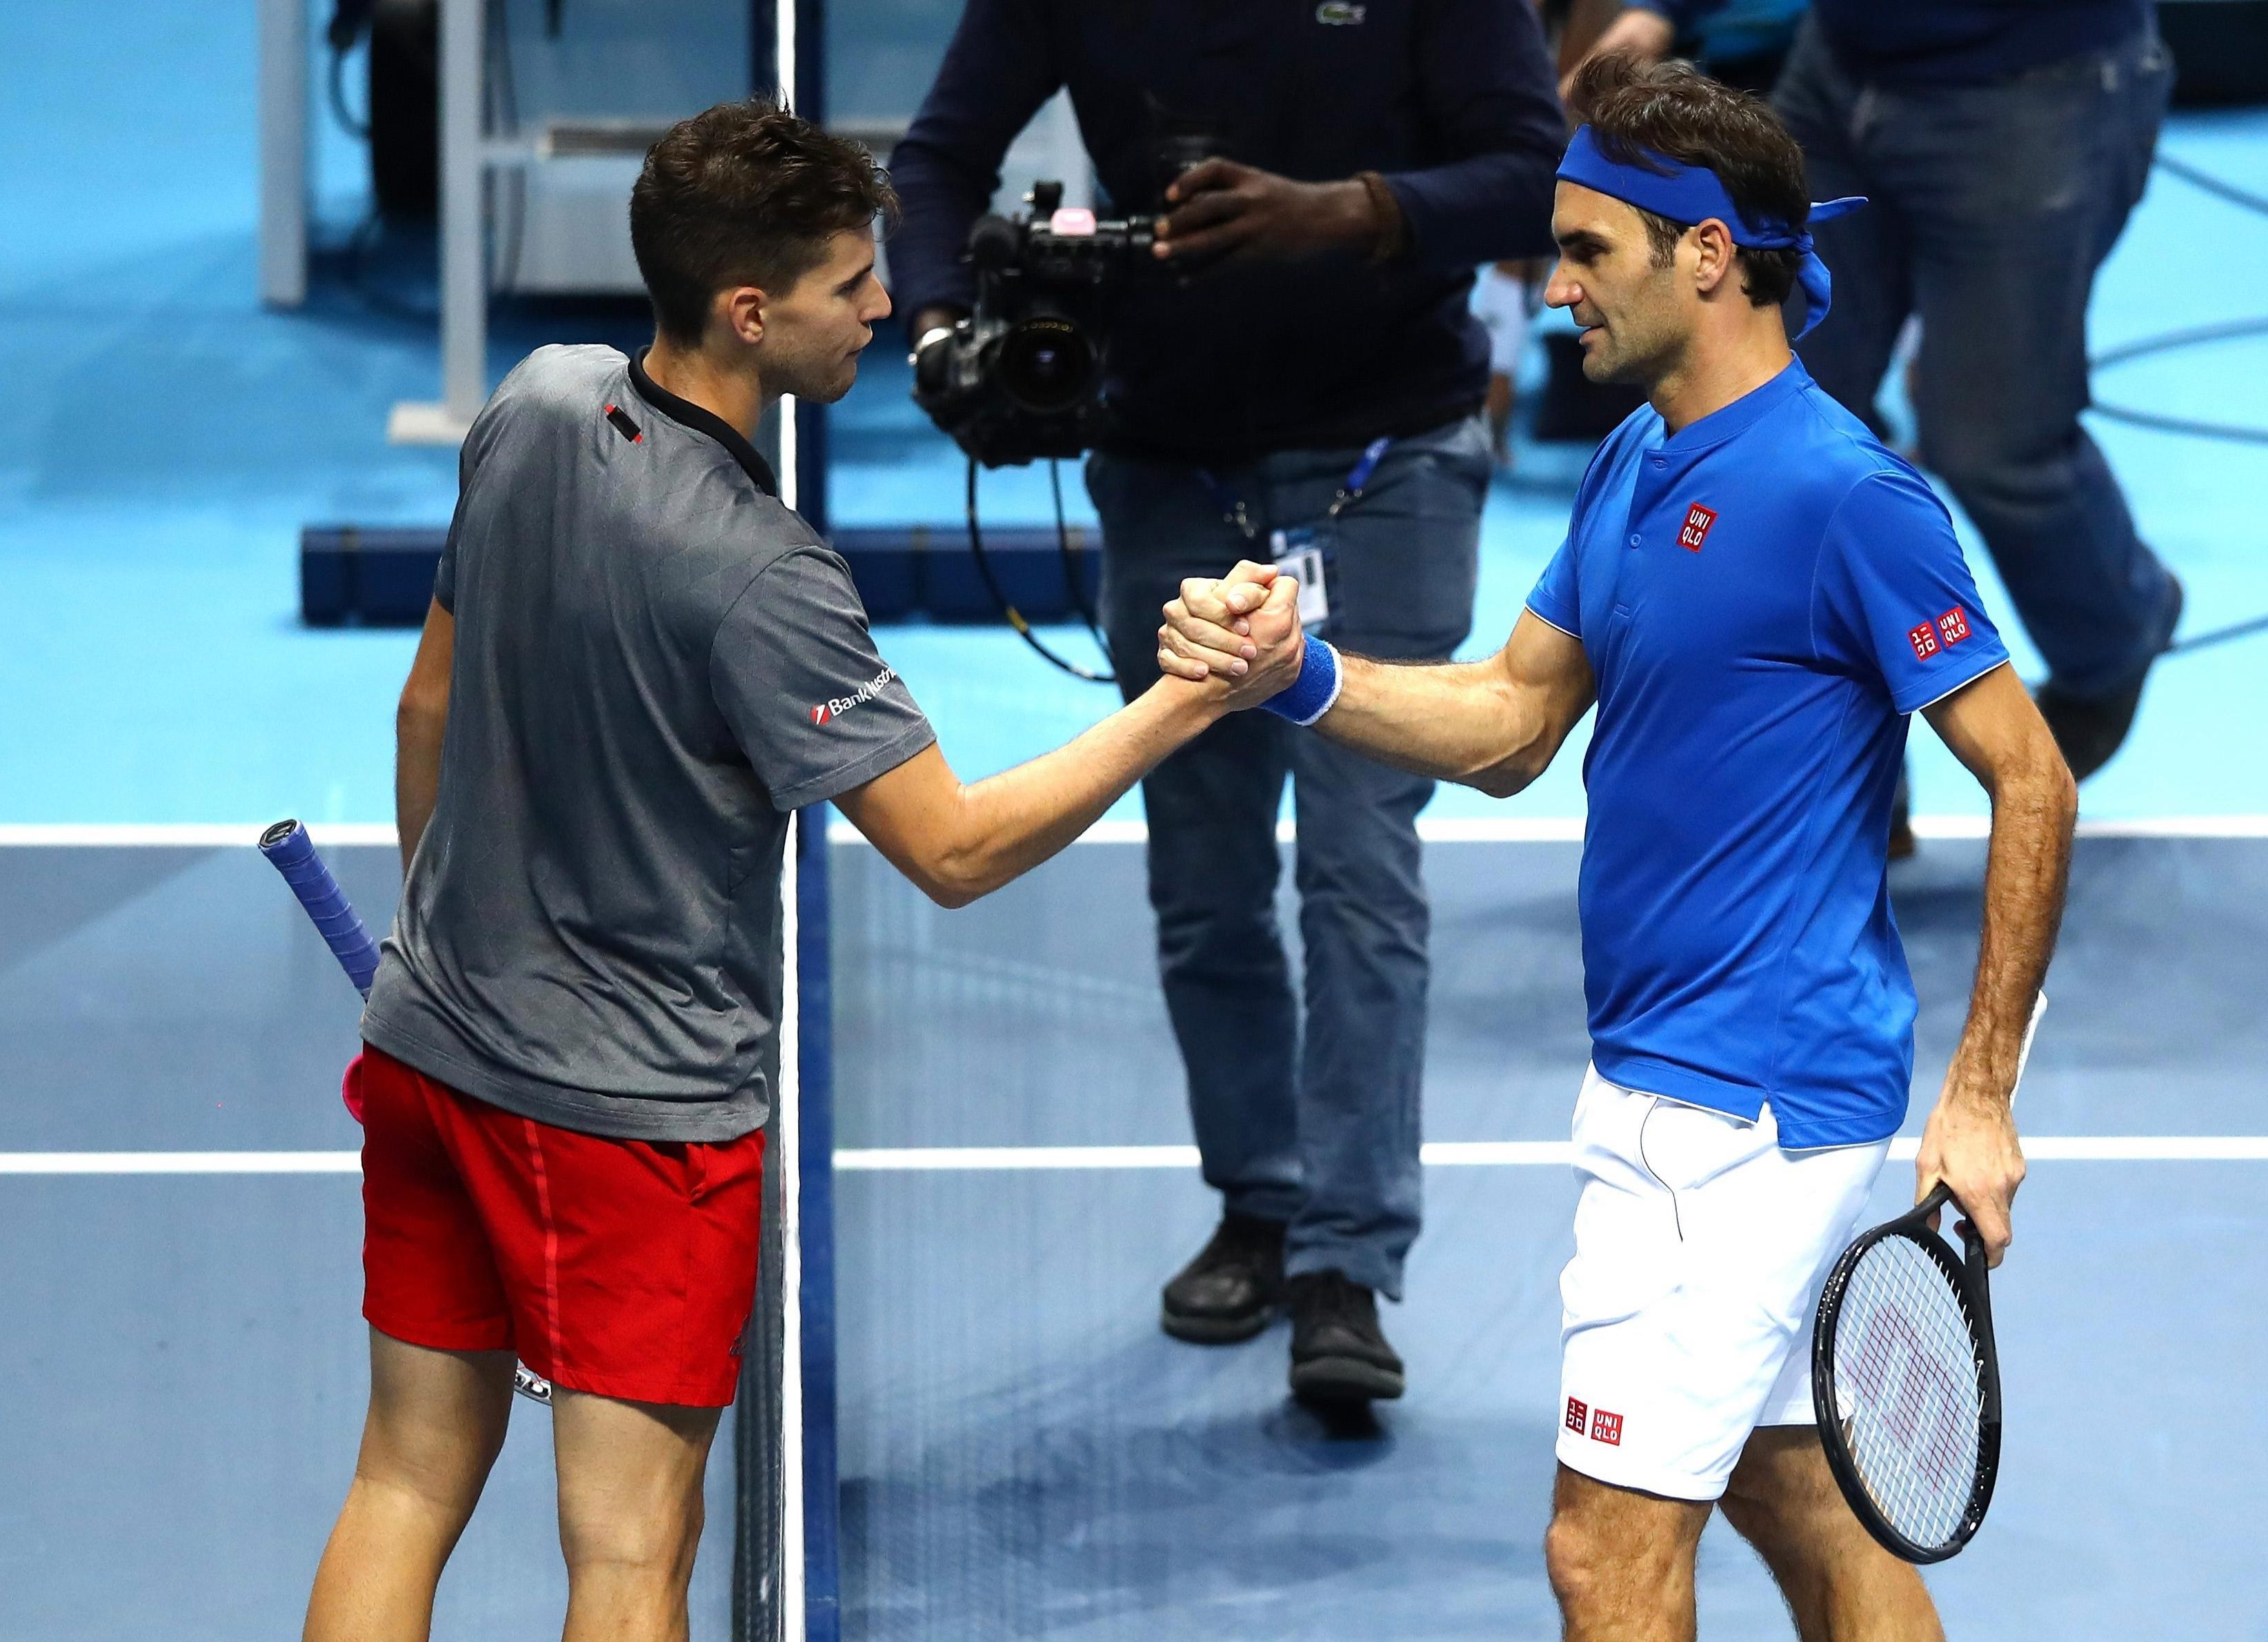 Roger Federer beat Dominic Thiem 6-2 6-3 at the O2 Arena